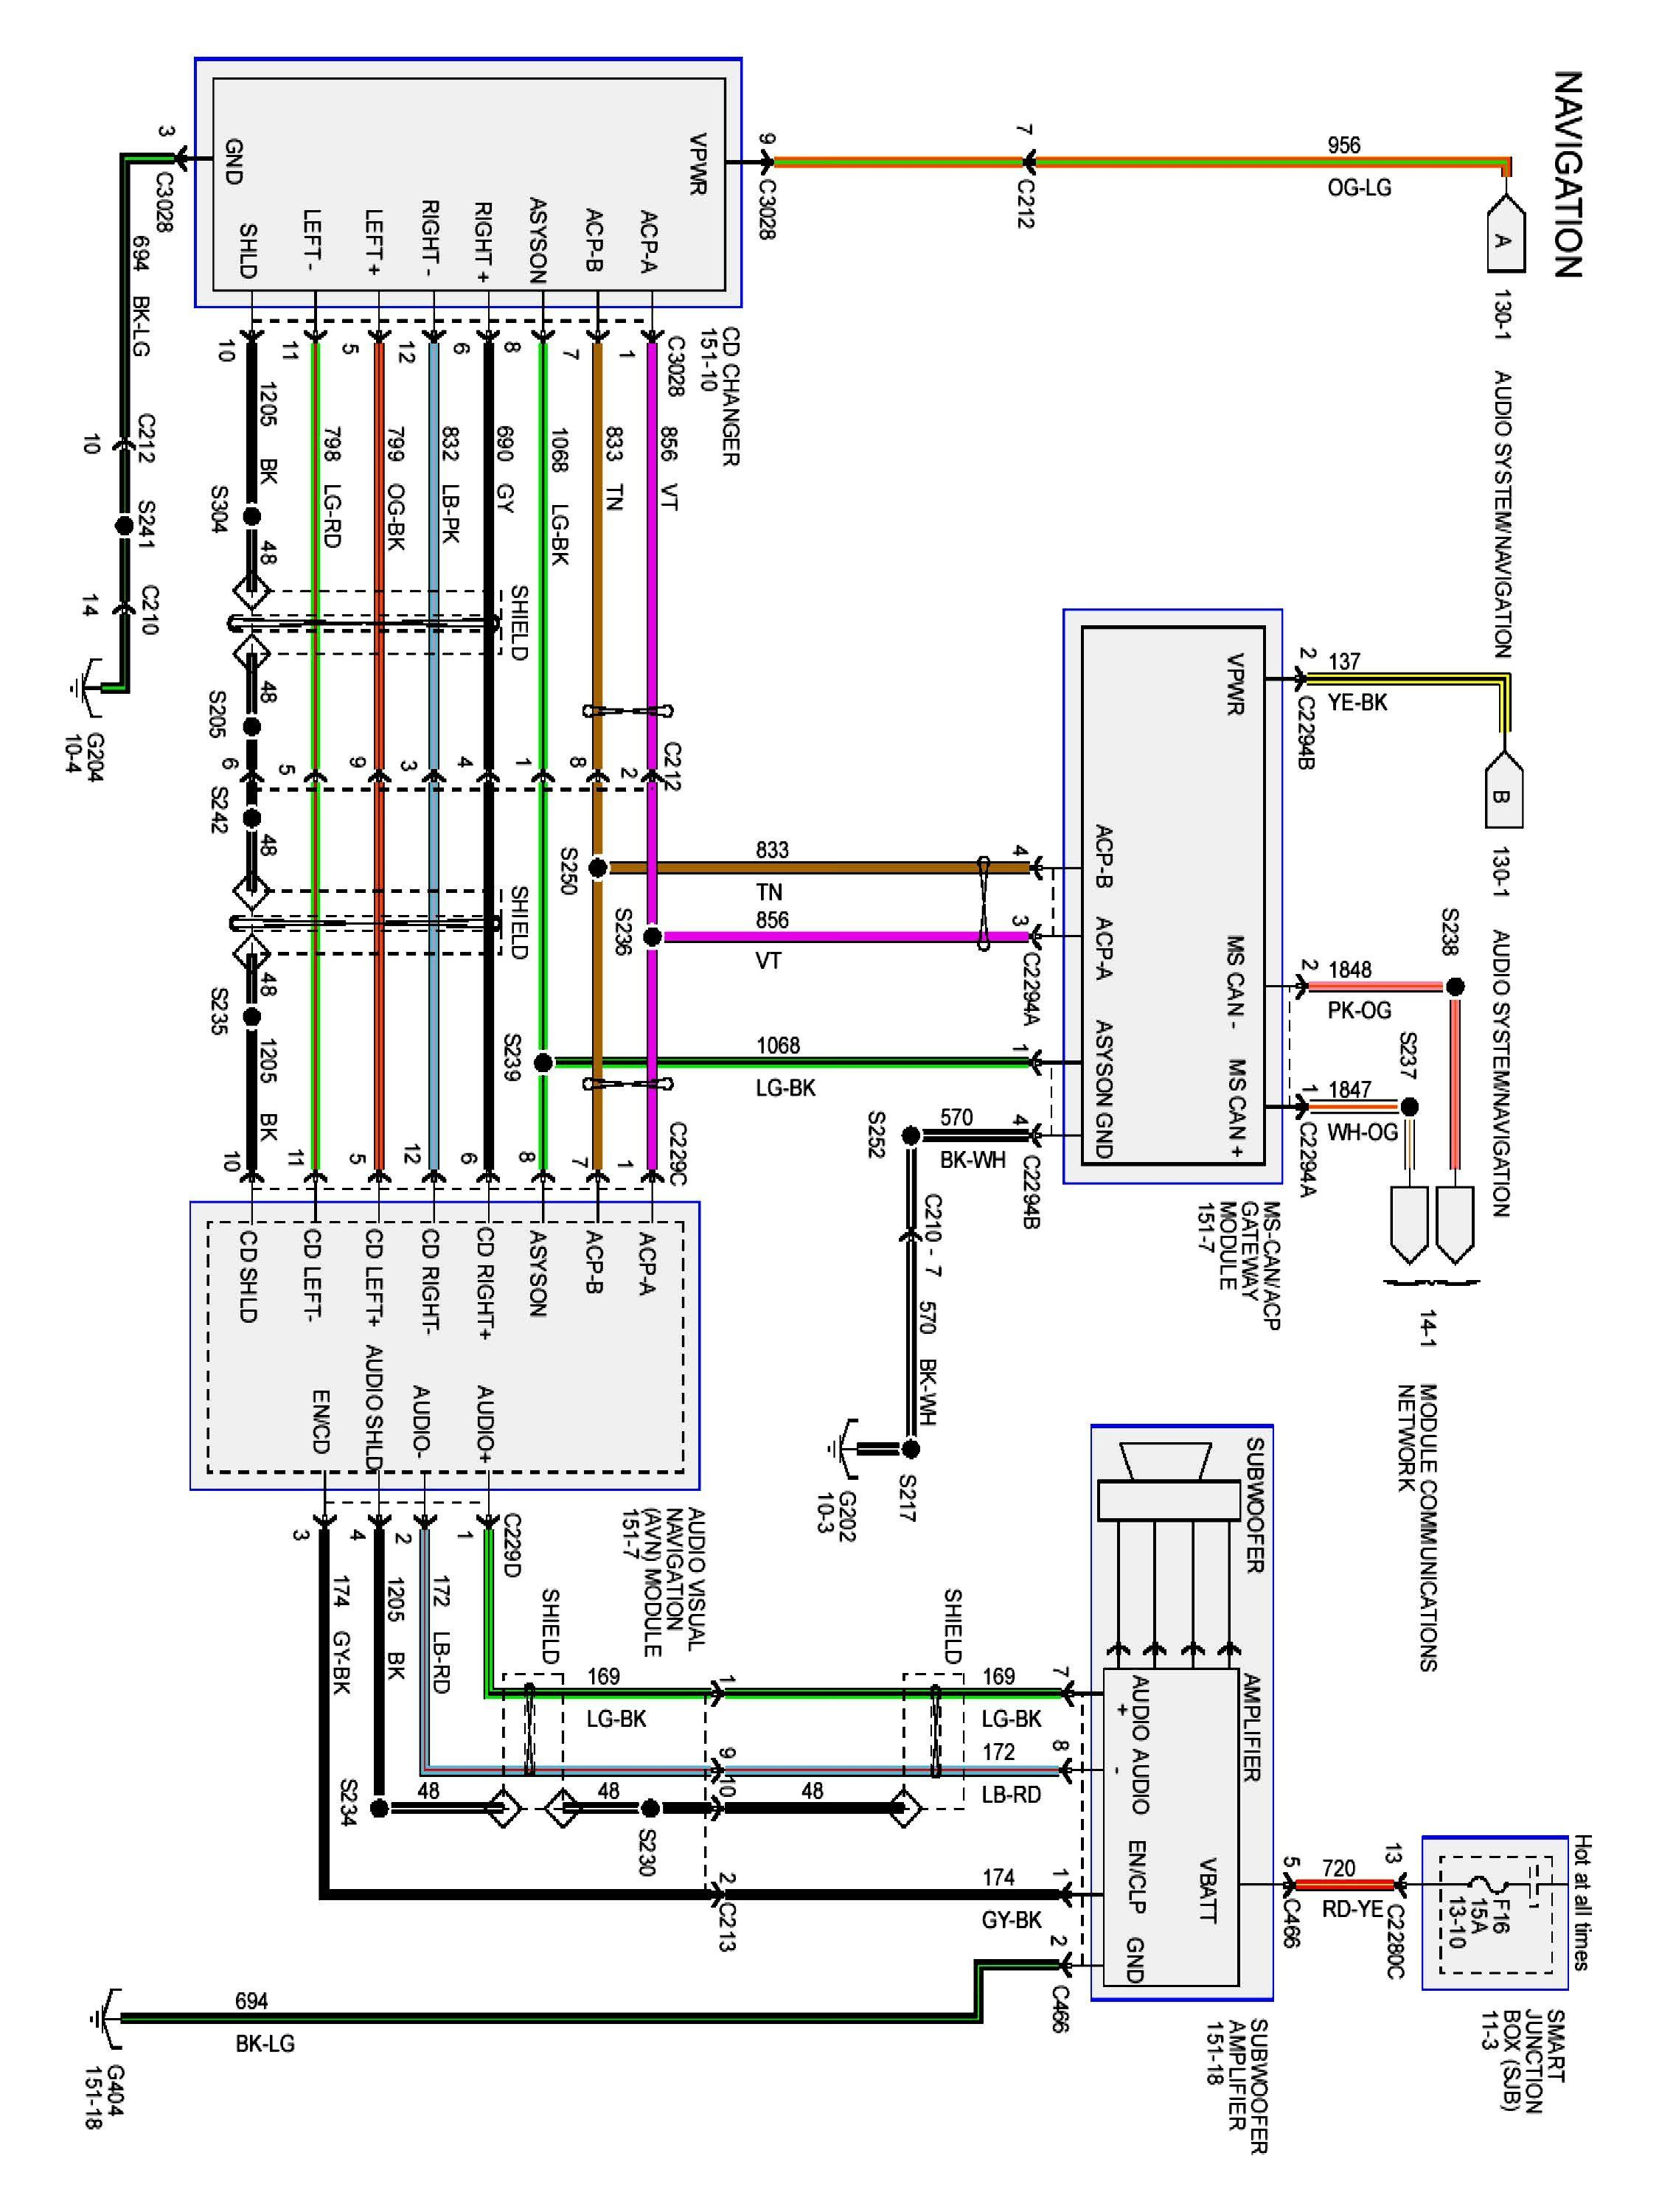 Toyota Jbl Amplifier Wiring Diagram Http Bookingritzcarlton Info Toyota Jbl Amplifier Wiring Di Ford Expedition Electrical Wiring Diagram Electrical Diagram